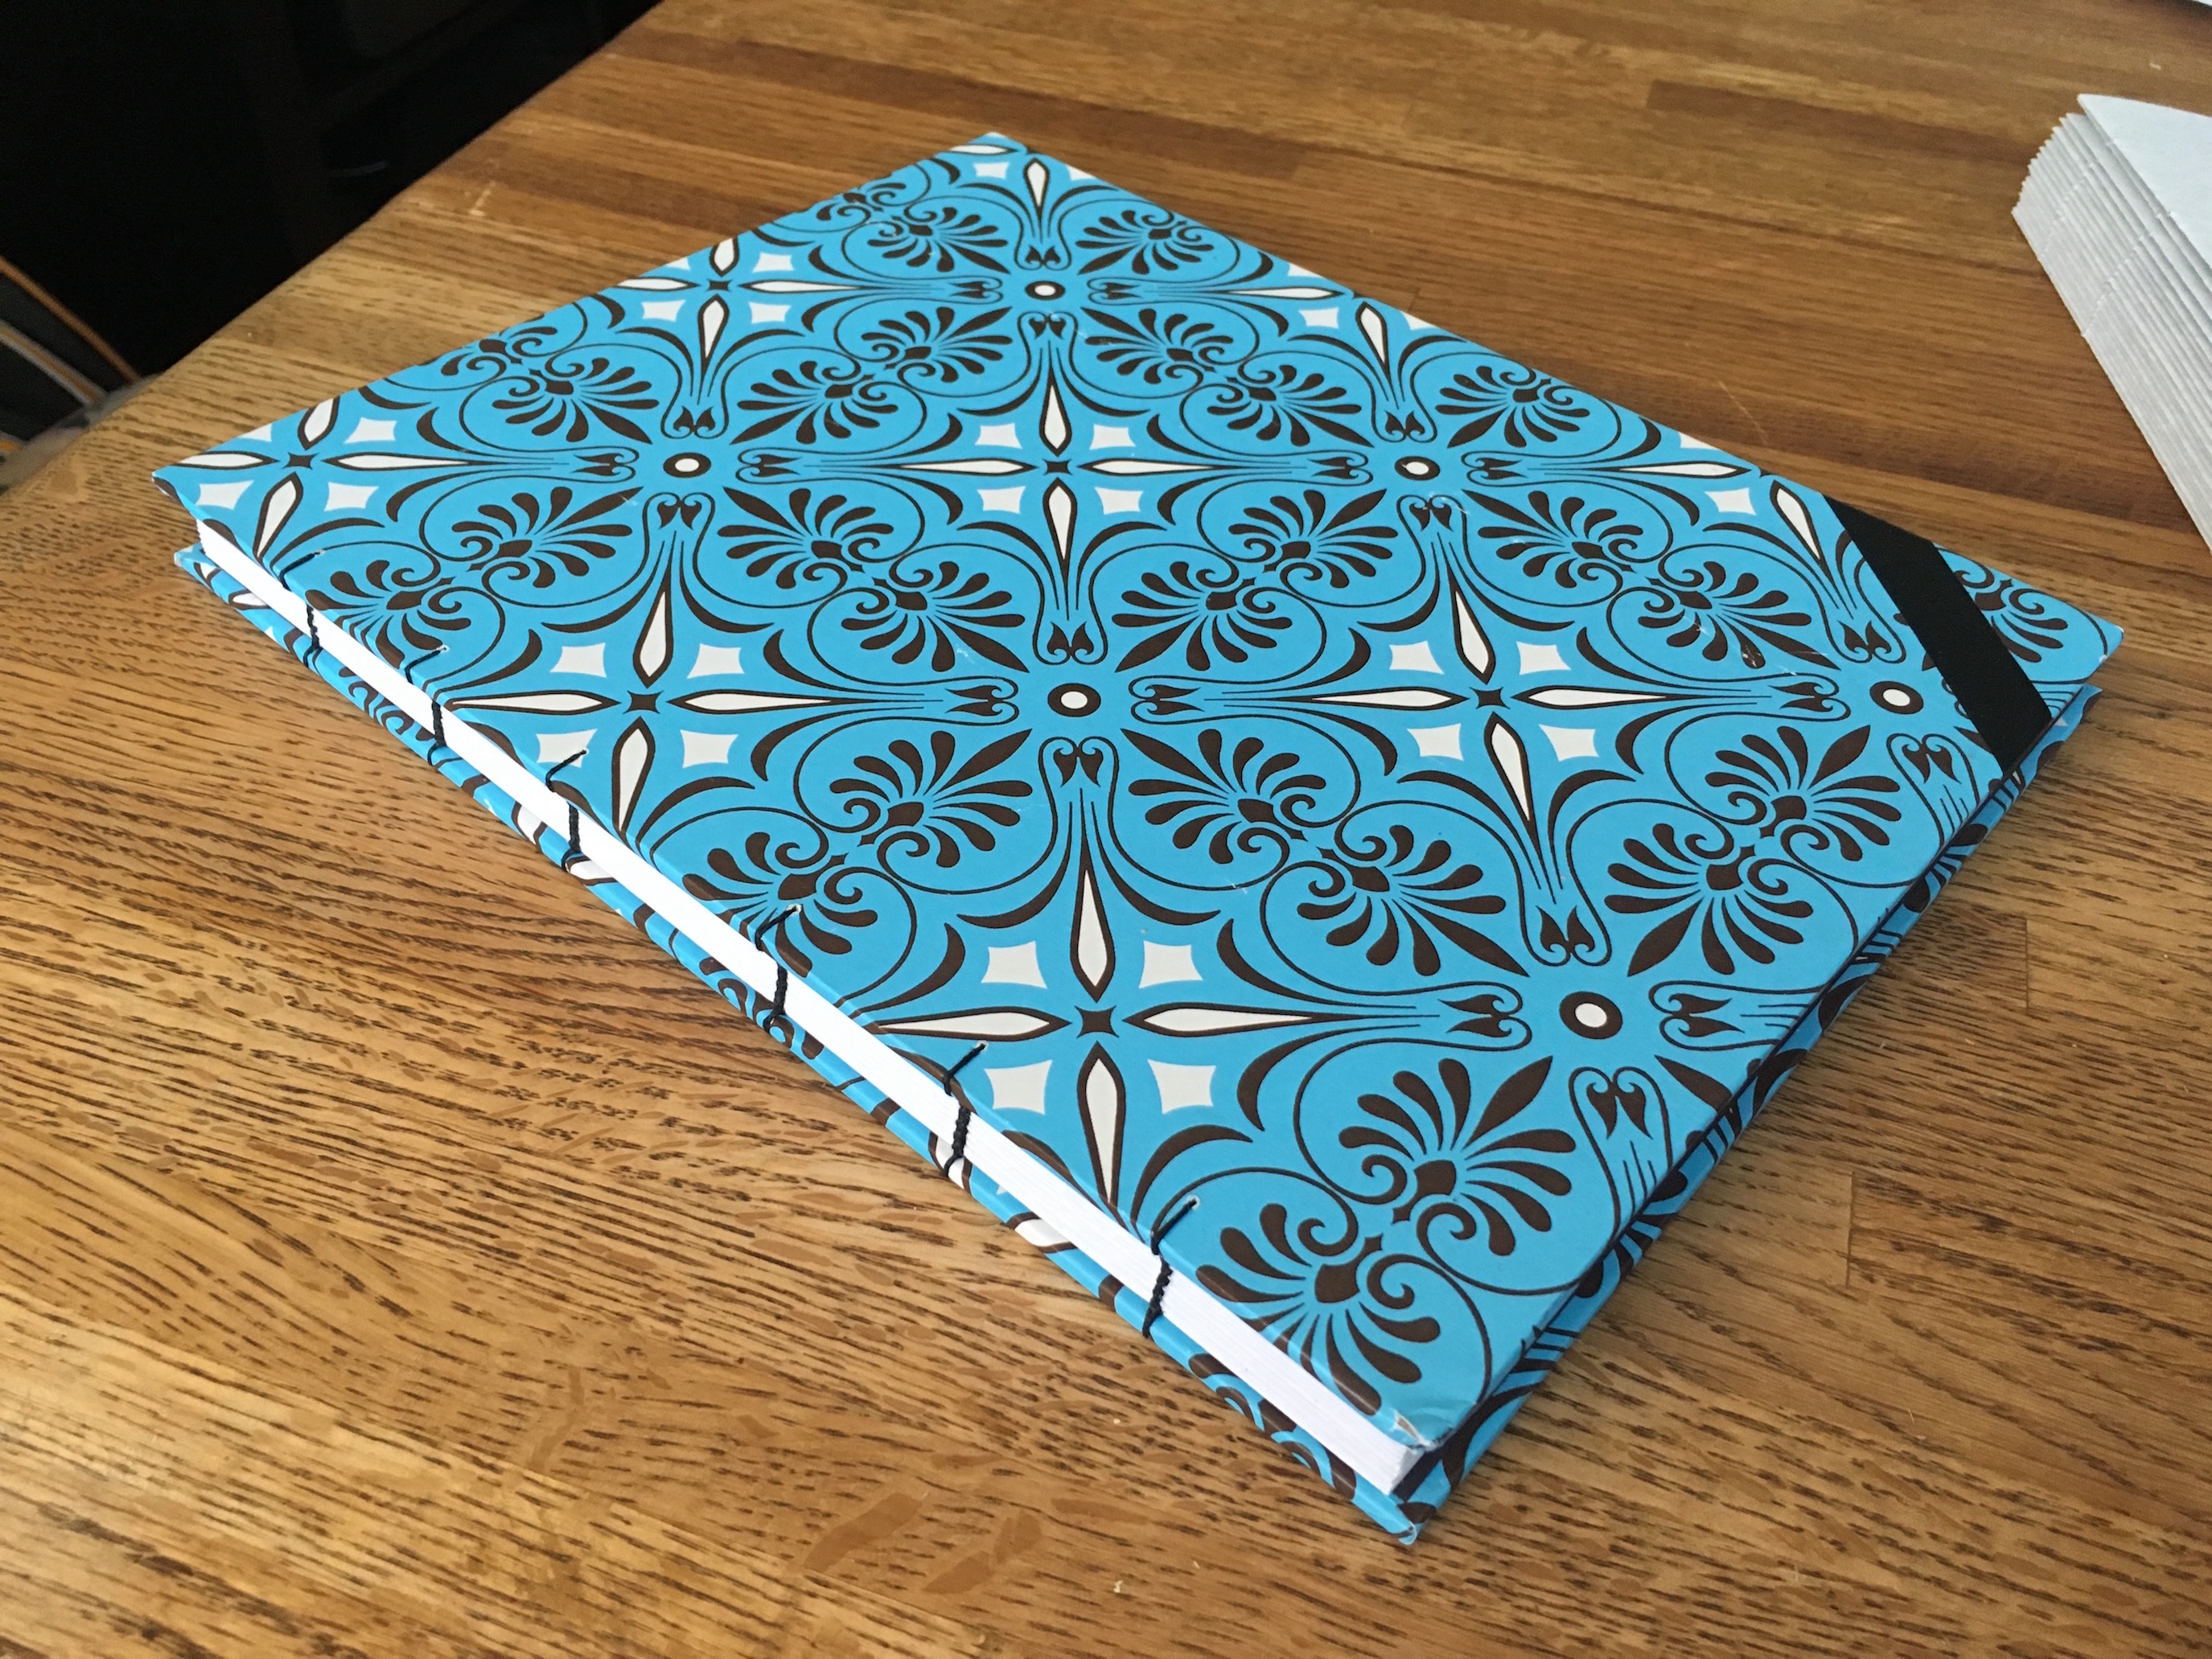 Bookbinding – A Giant Notebook, and a Punching Cradle